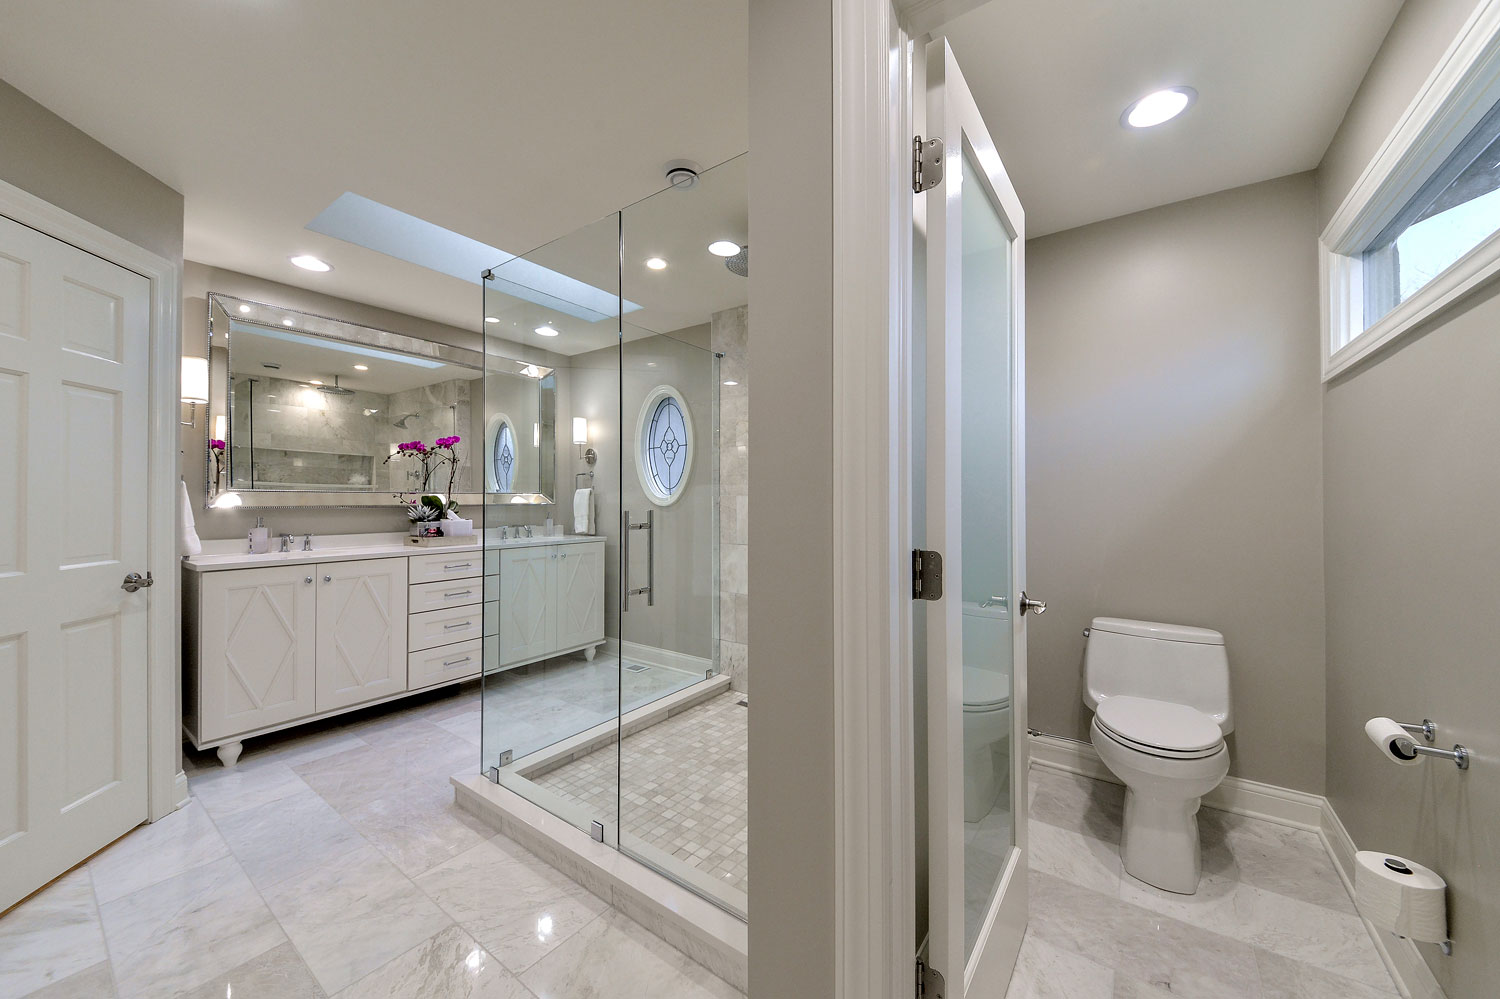 Bobby lisa 39 s master bathroom remodel pictures home for Bathroom design service